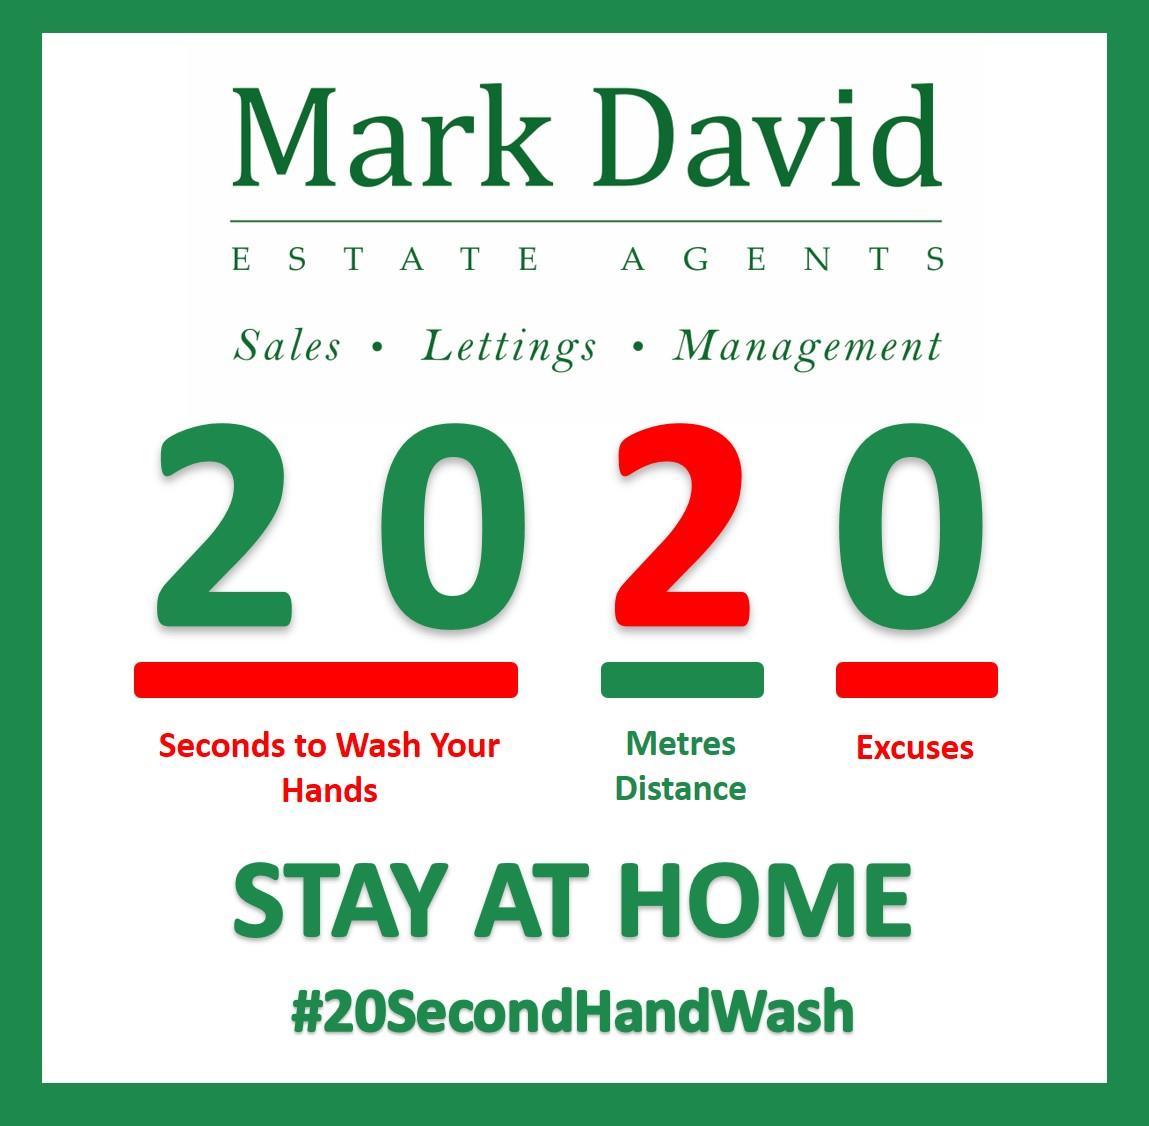 #20SecondHandWash